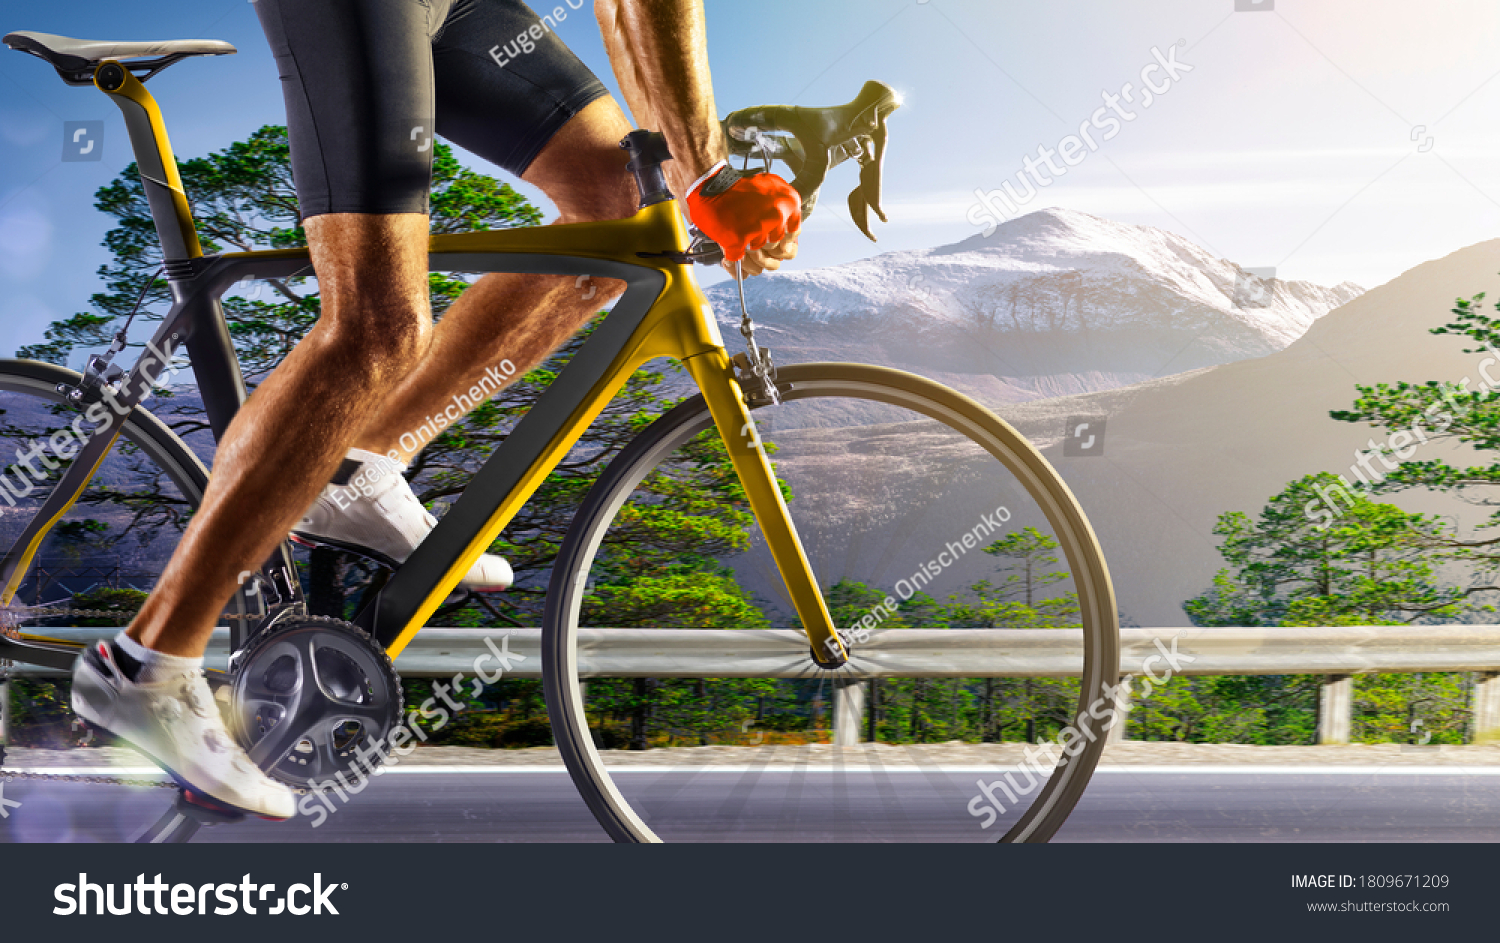 Professional road bicycle racer in action #1809671209